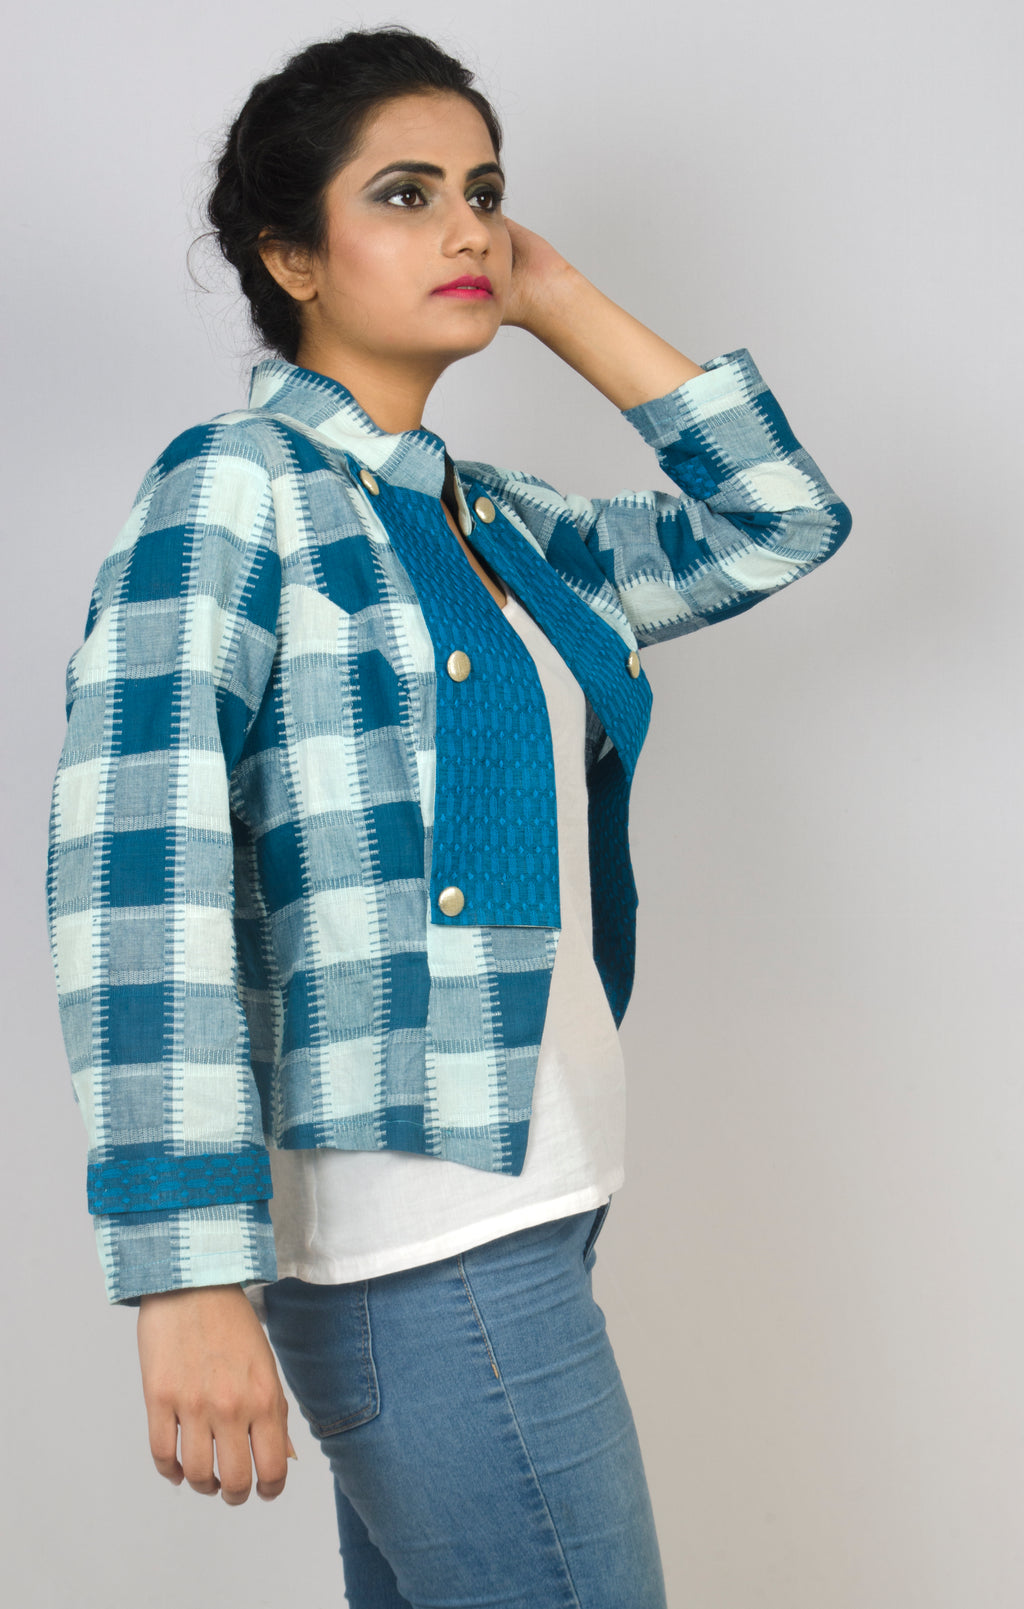 MIRCHI KOMACHI ladies / women's blue green light Military Jacket is a cute Indo-Western item! Made with very comfortable Indian cotton fabric. Great silhouette with short length. Shop online!